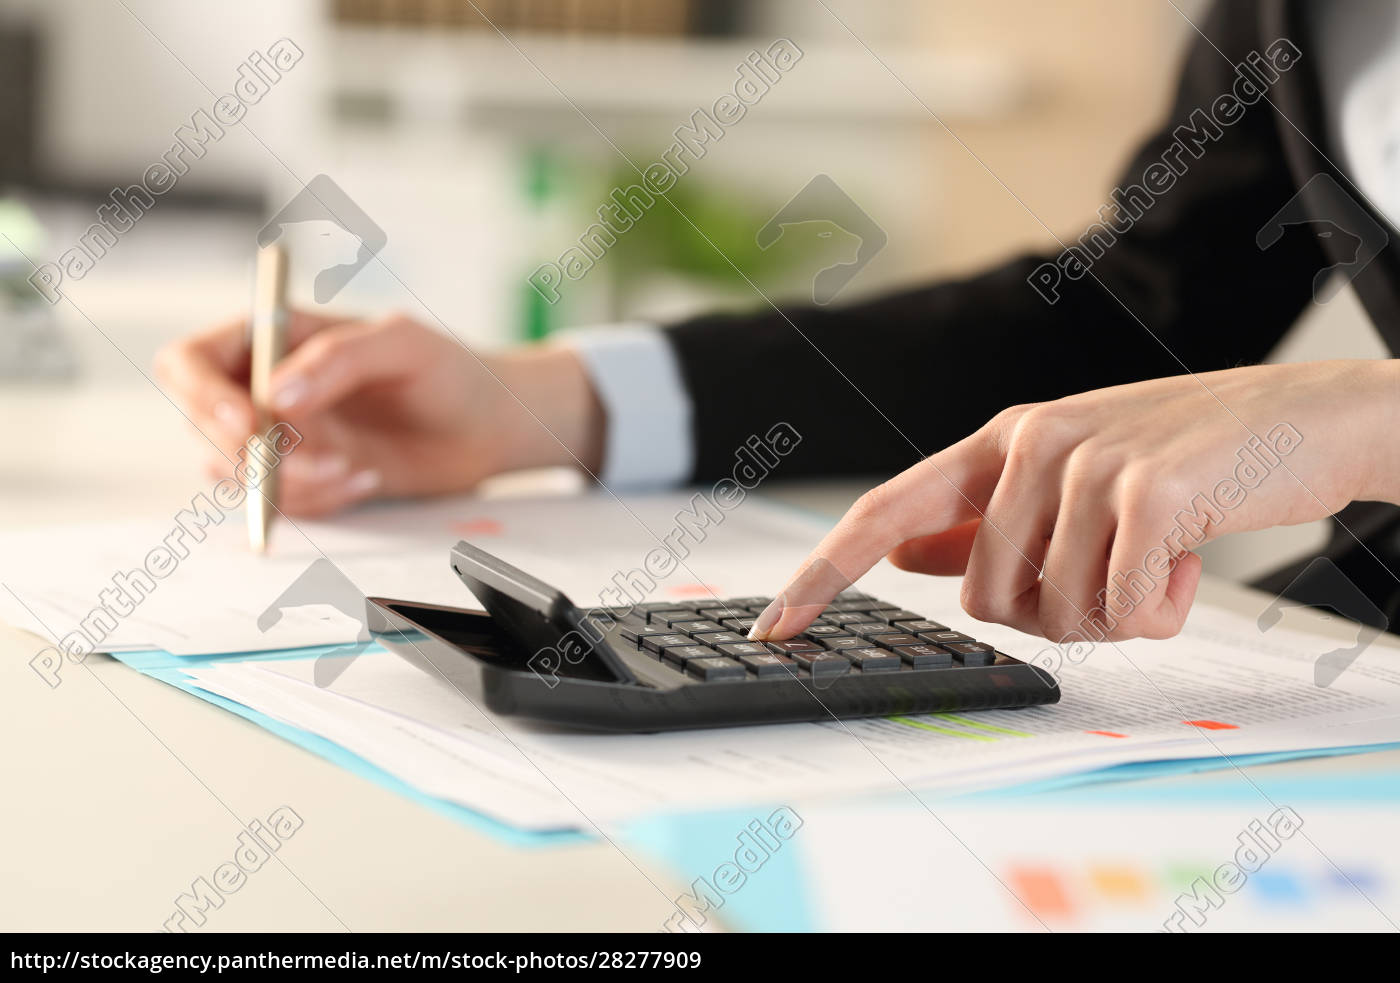 executive, hands, calculating, with, calculator, at - 28277909